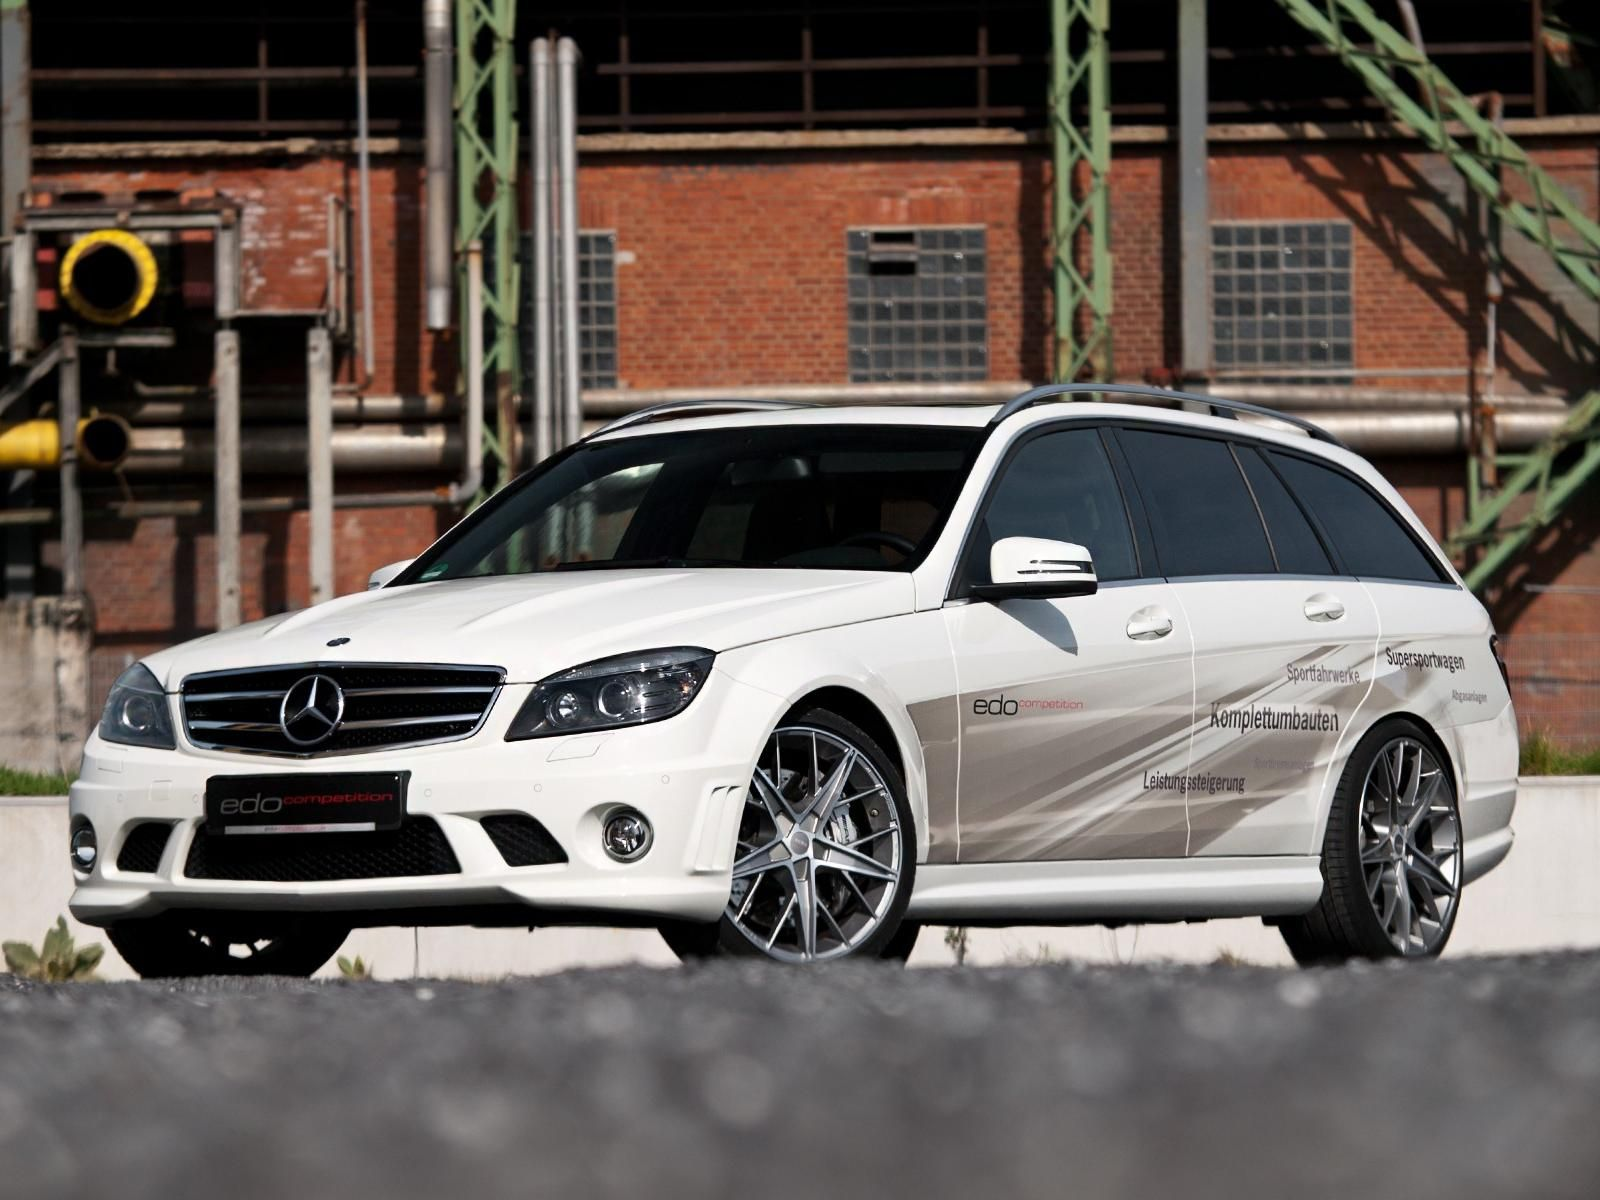 2012 Edo C 63 AMG T MODELL Galleries